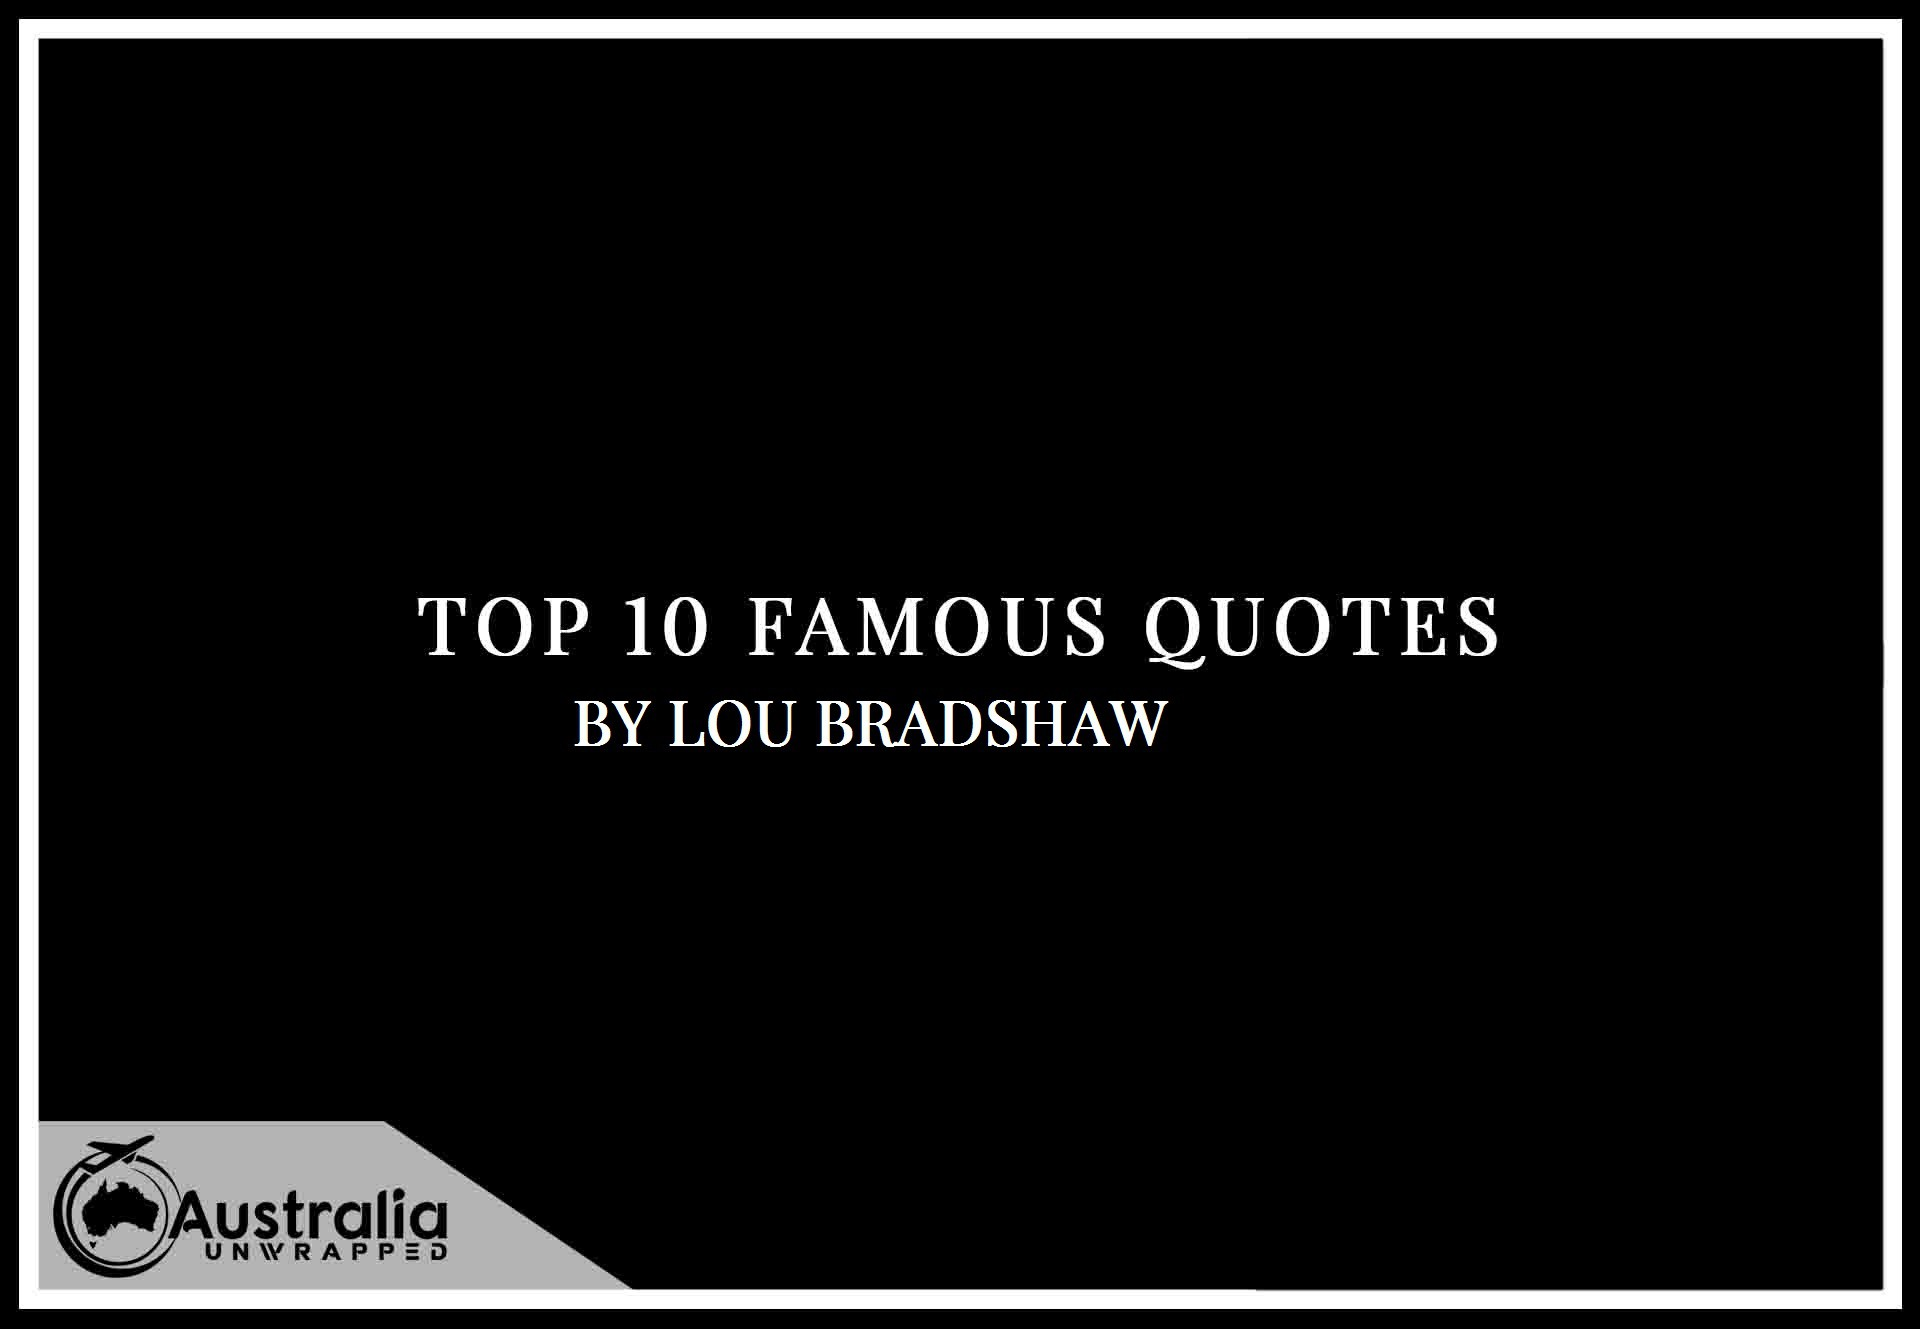 Lou Bradshaw's Top 10 Popular and Famous Quotes